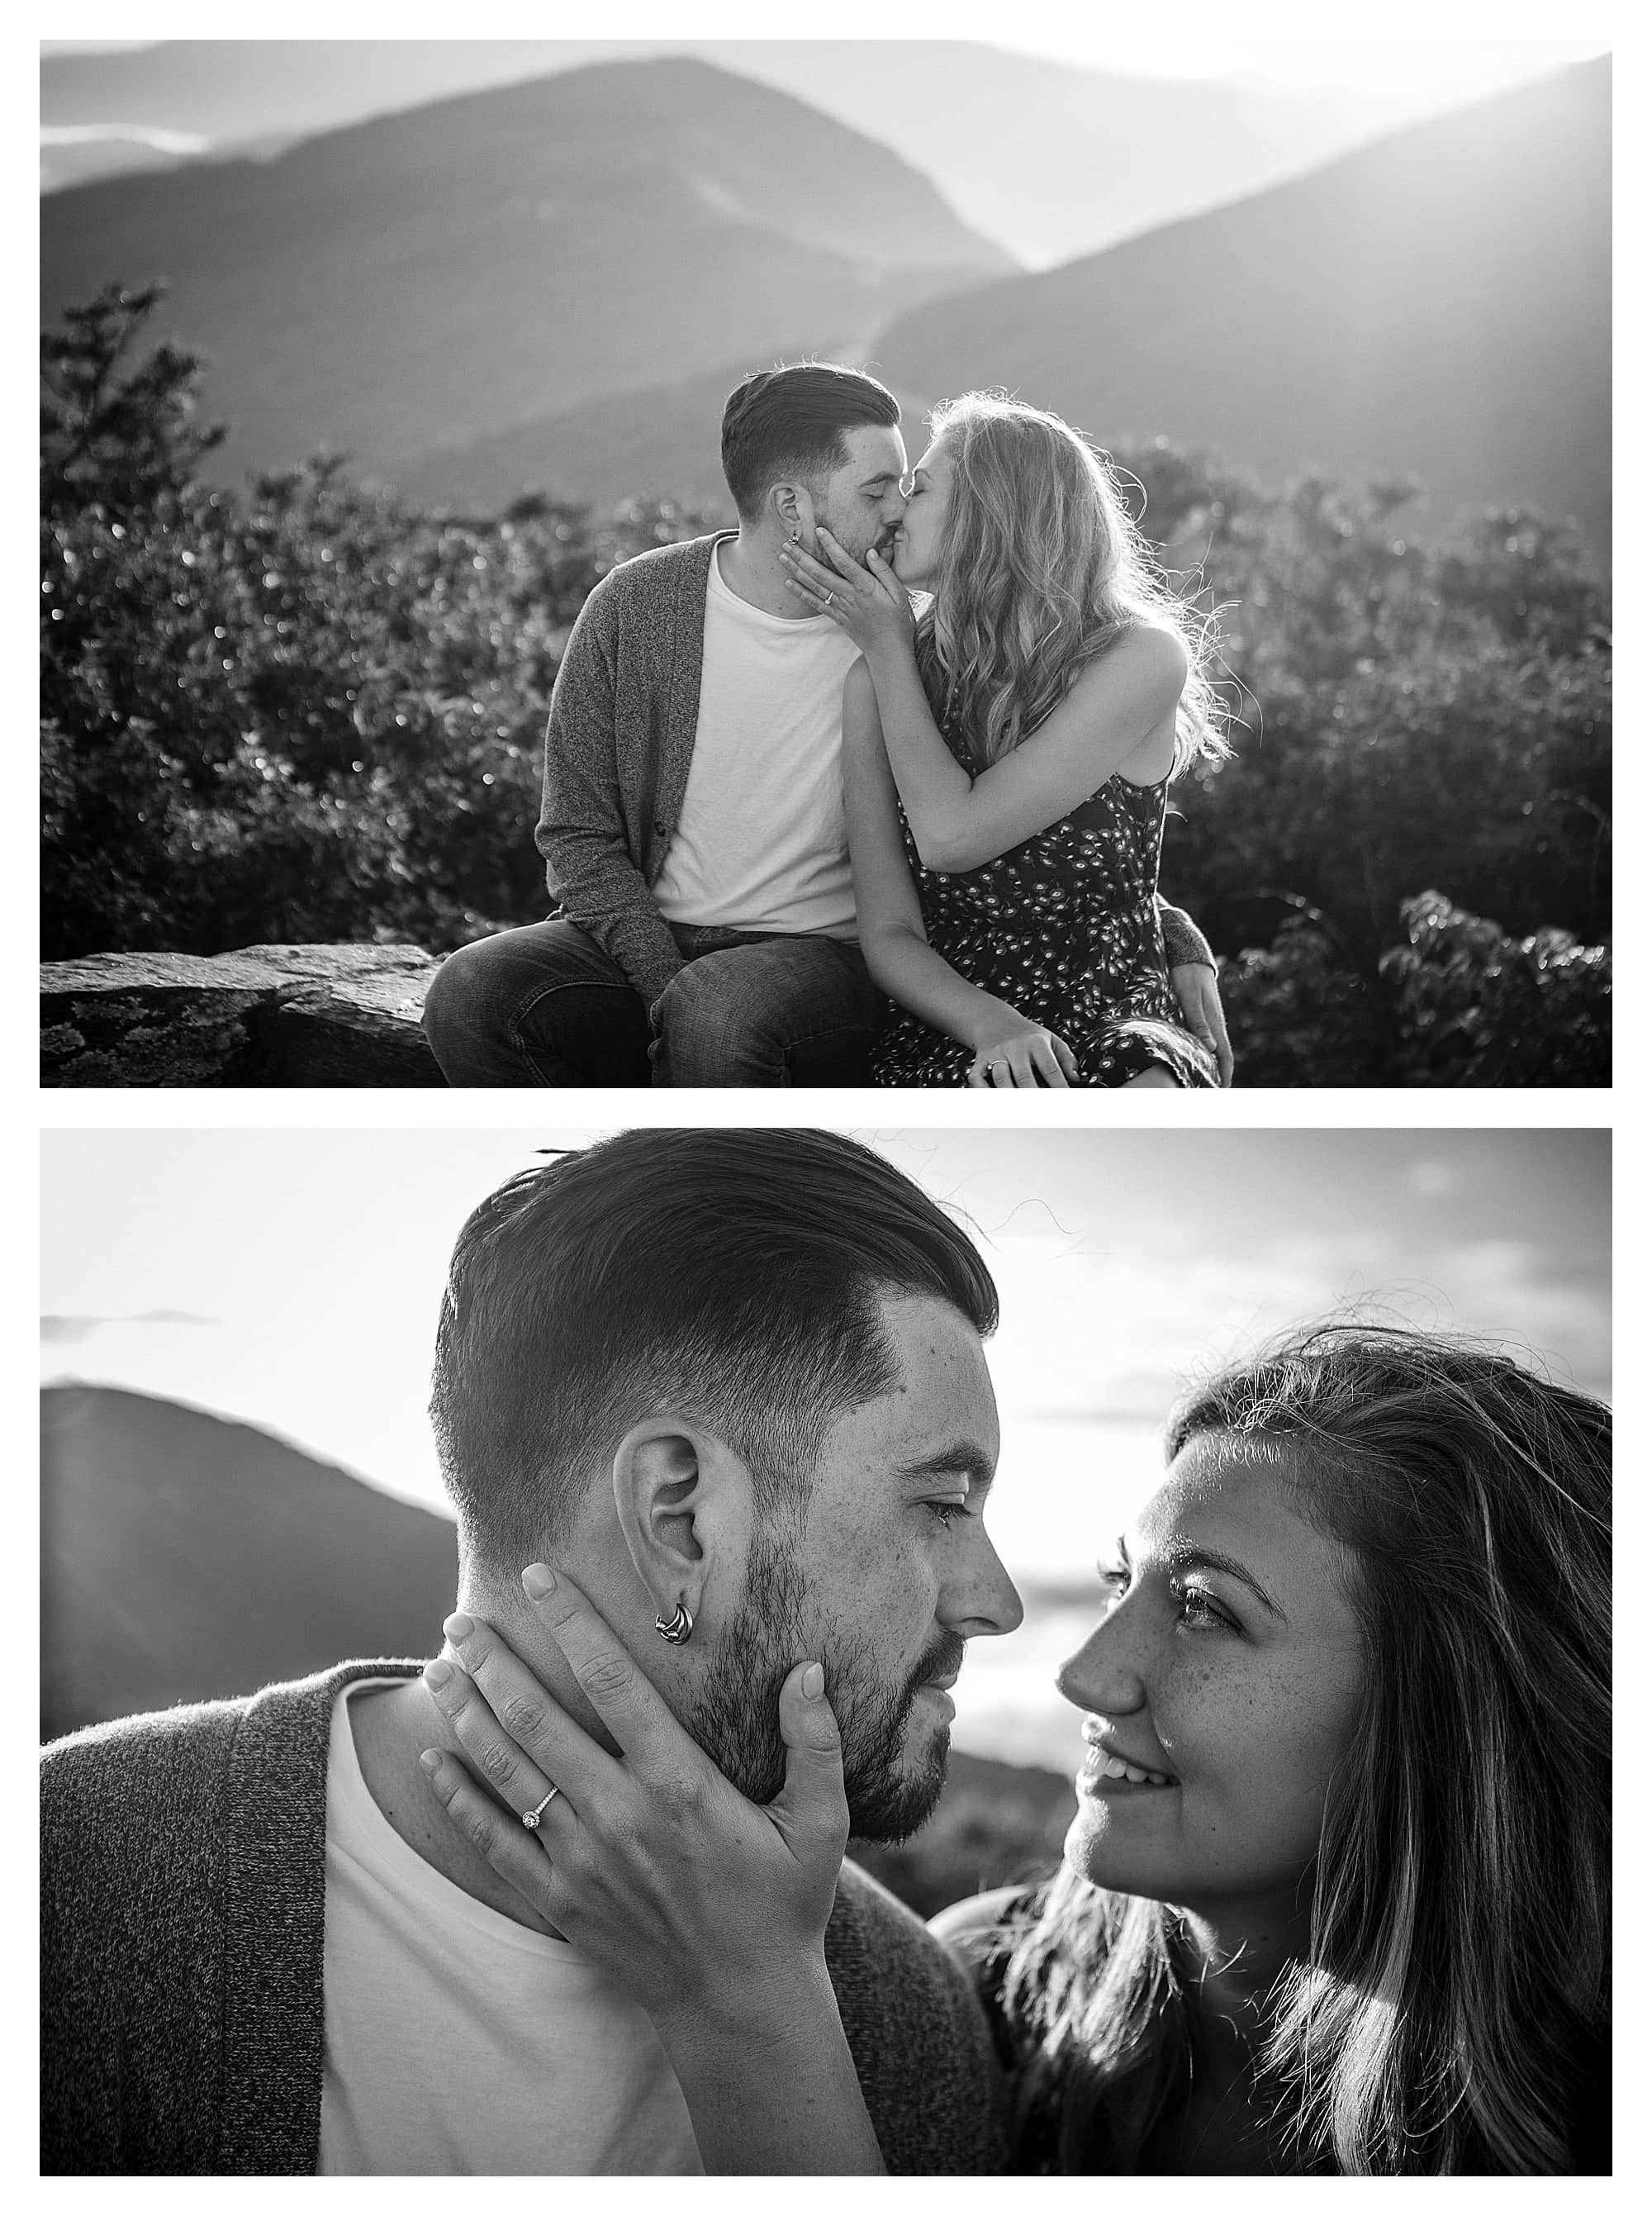 Black and white phots of engaged couple kissing while sitting on brick wall with mountains in background